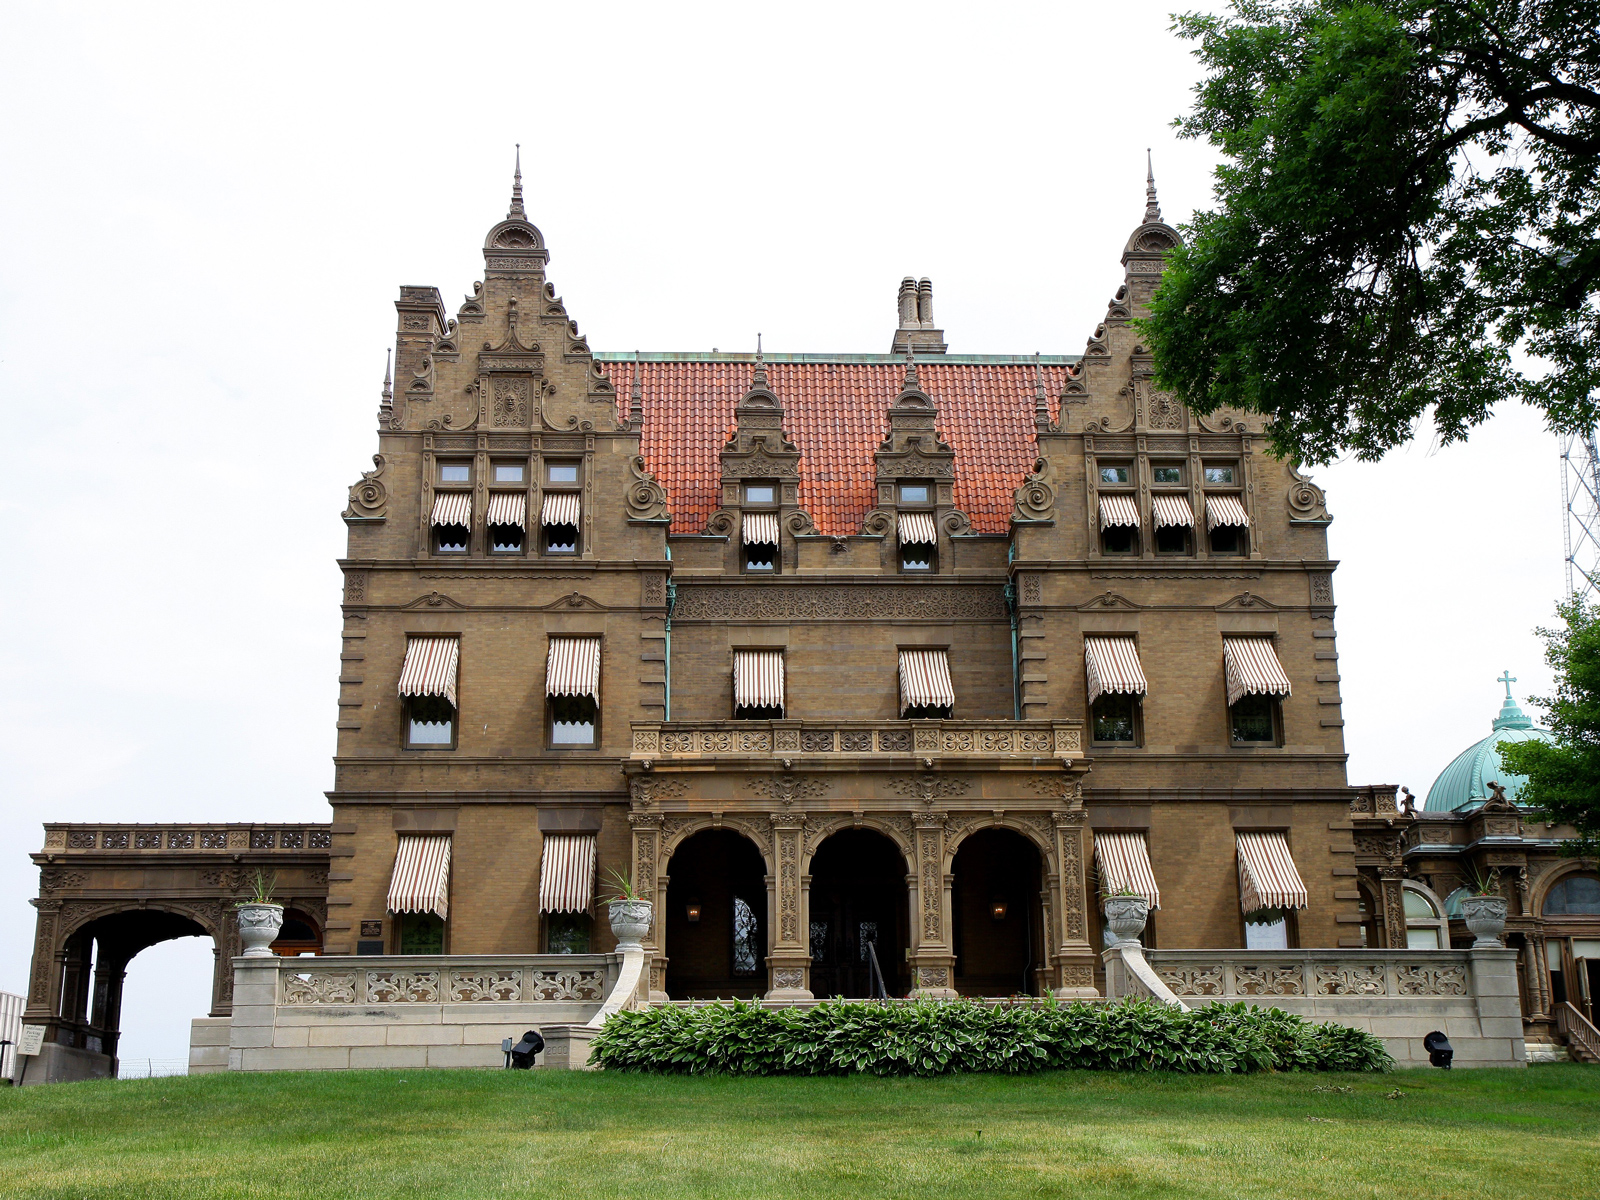 The Pabst Mansion in Milwaukee Will Hold a Yard Sale Next Weekend